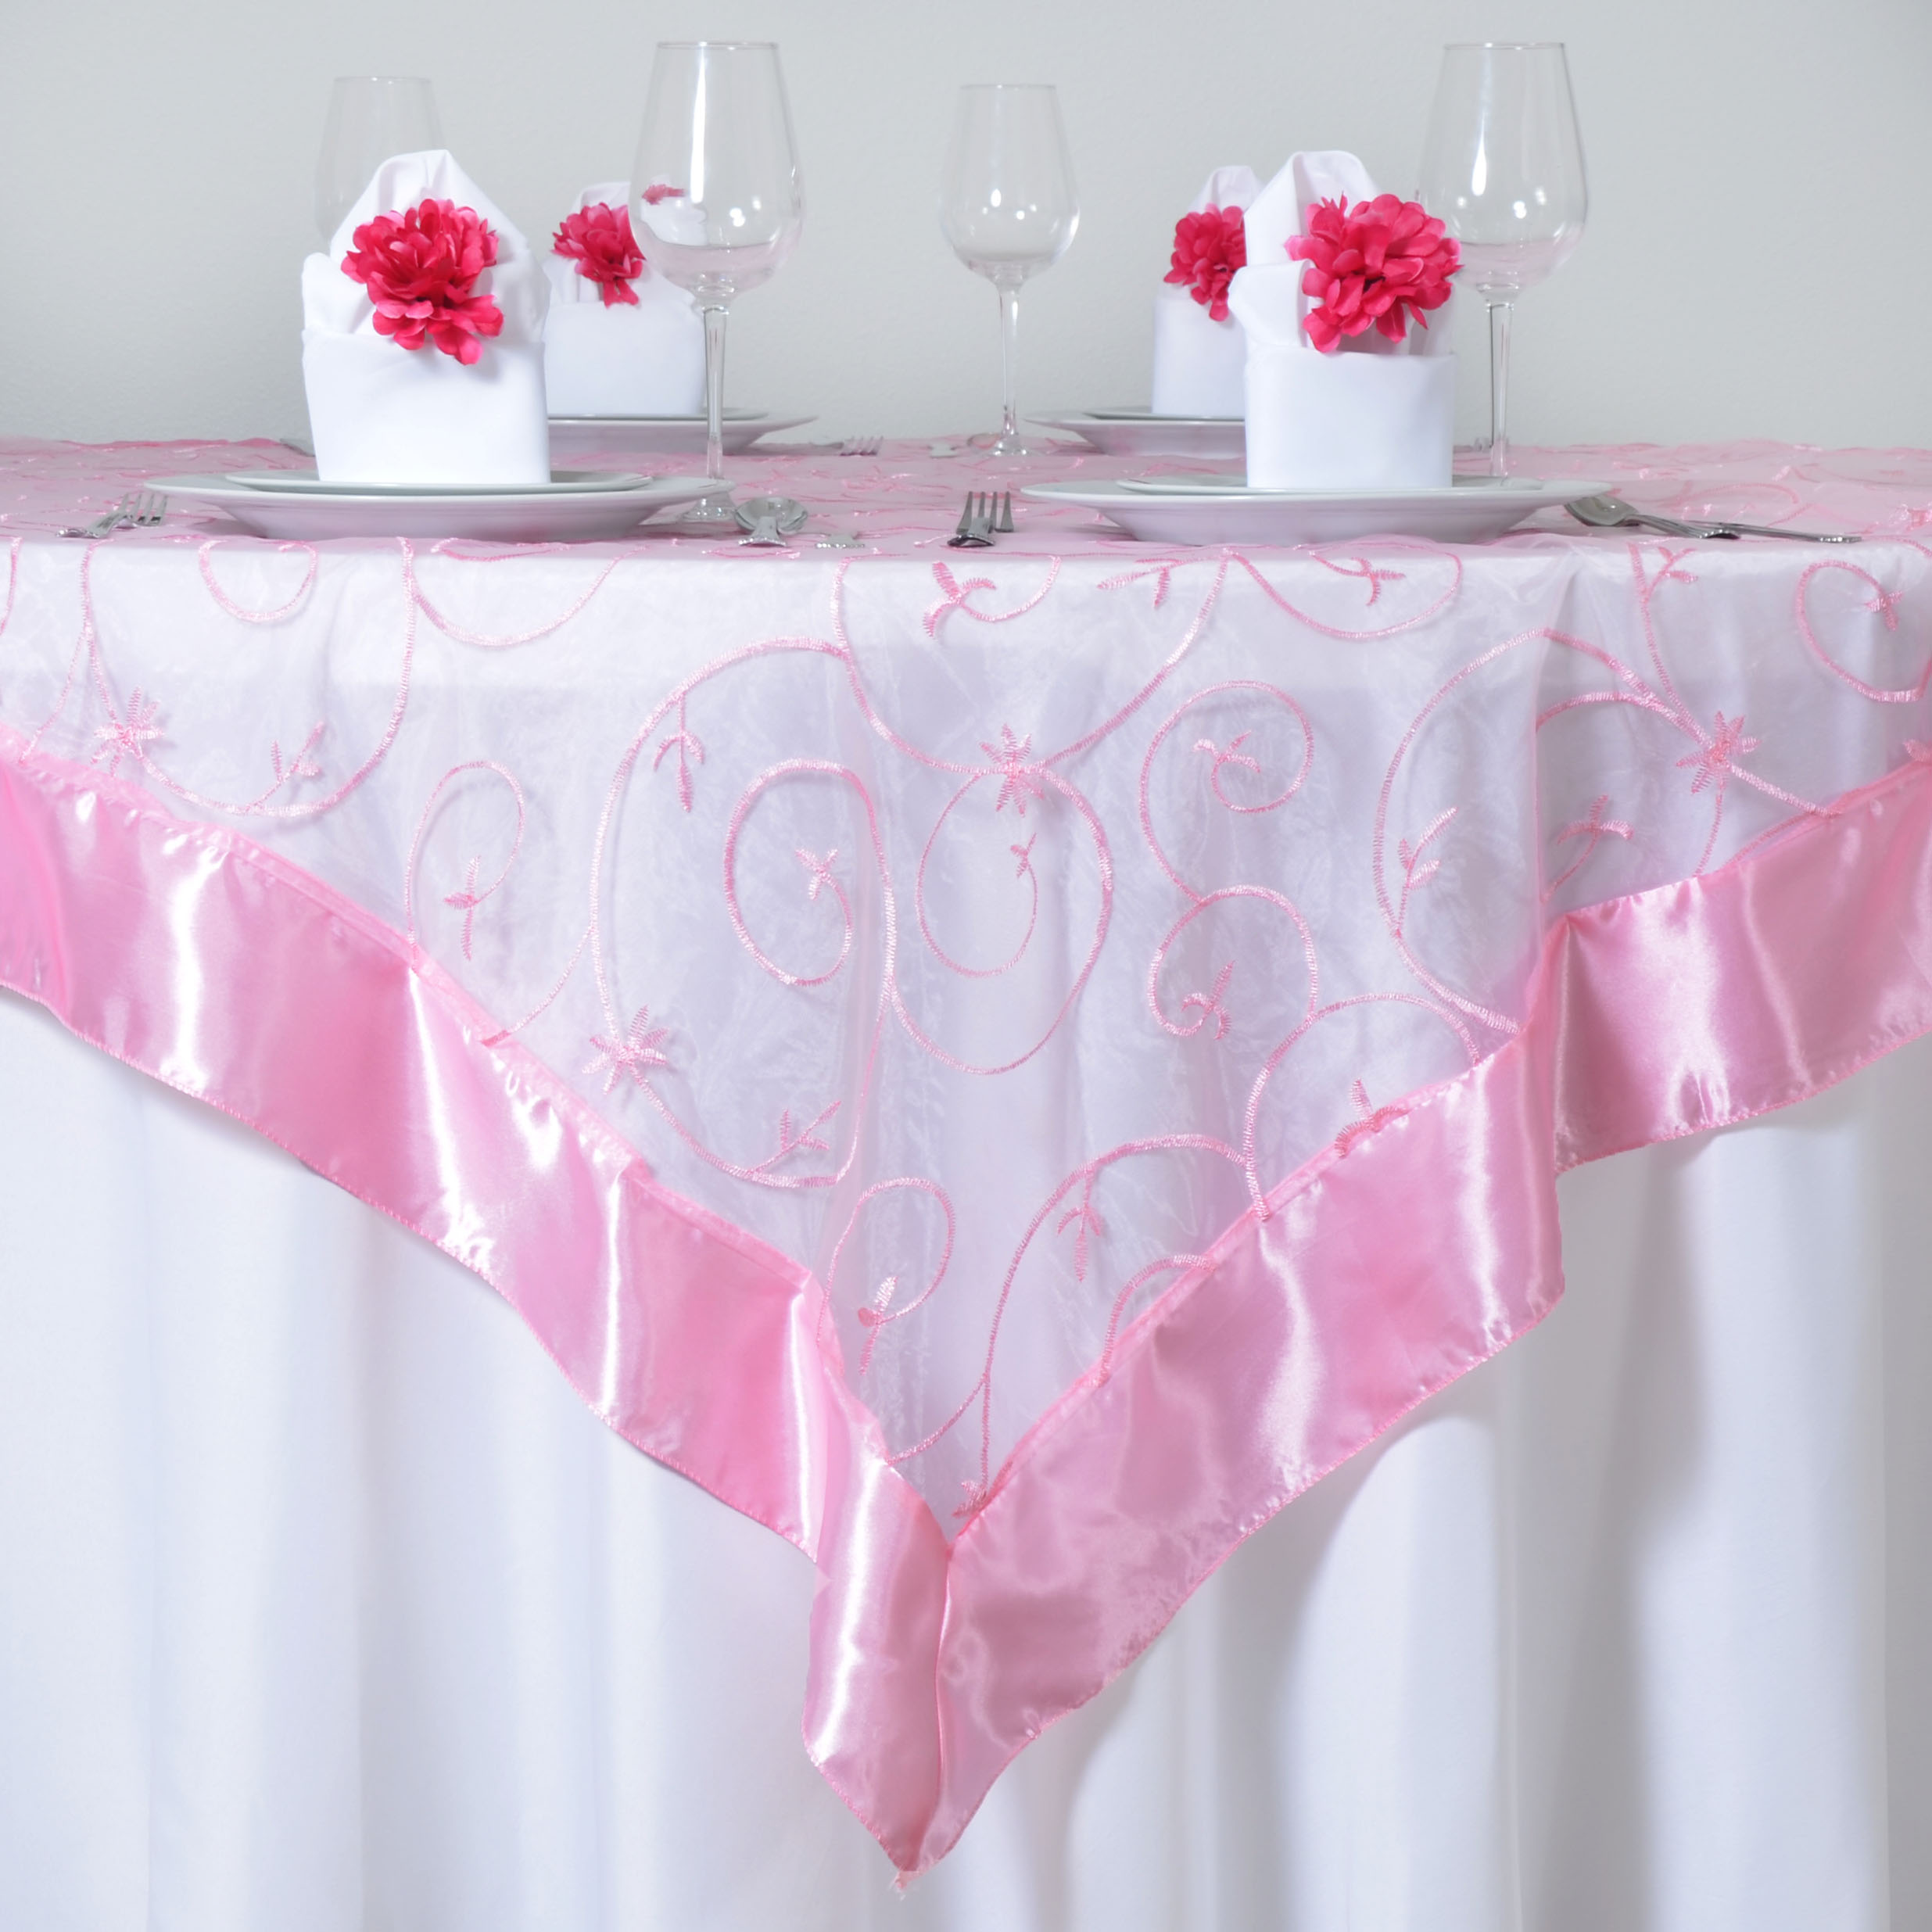 60x60 034 Embroidered Sheer Organza Table OVERLAY Unique